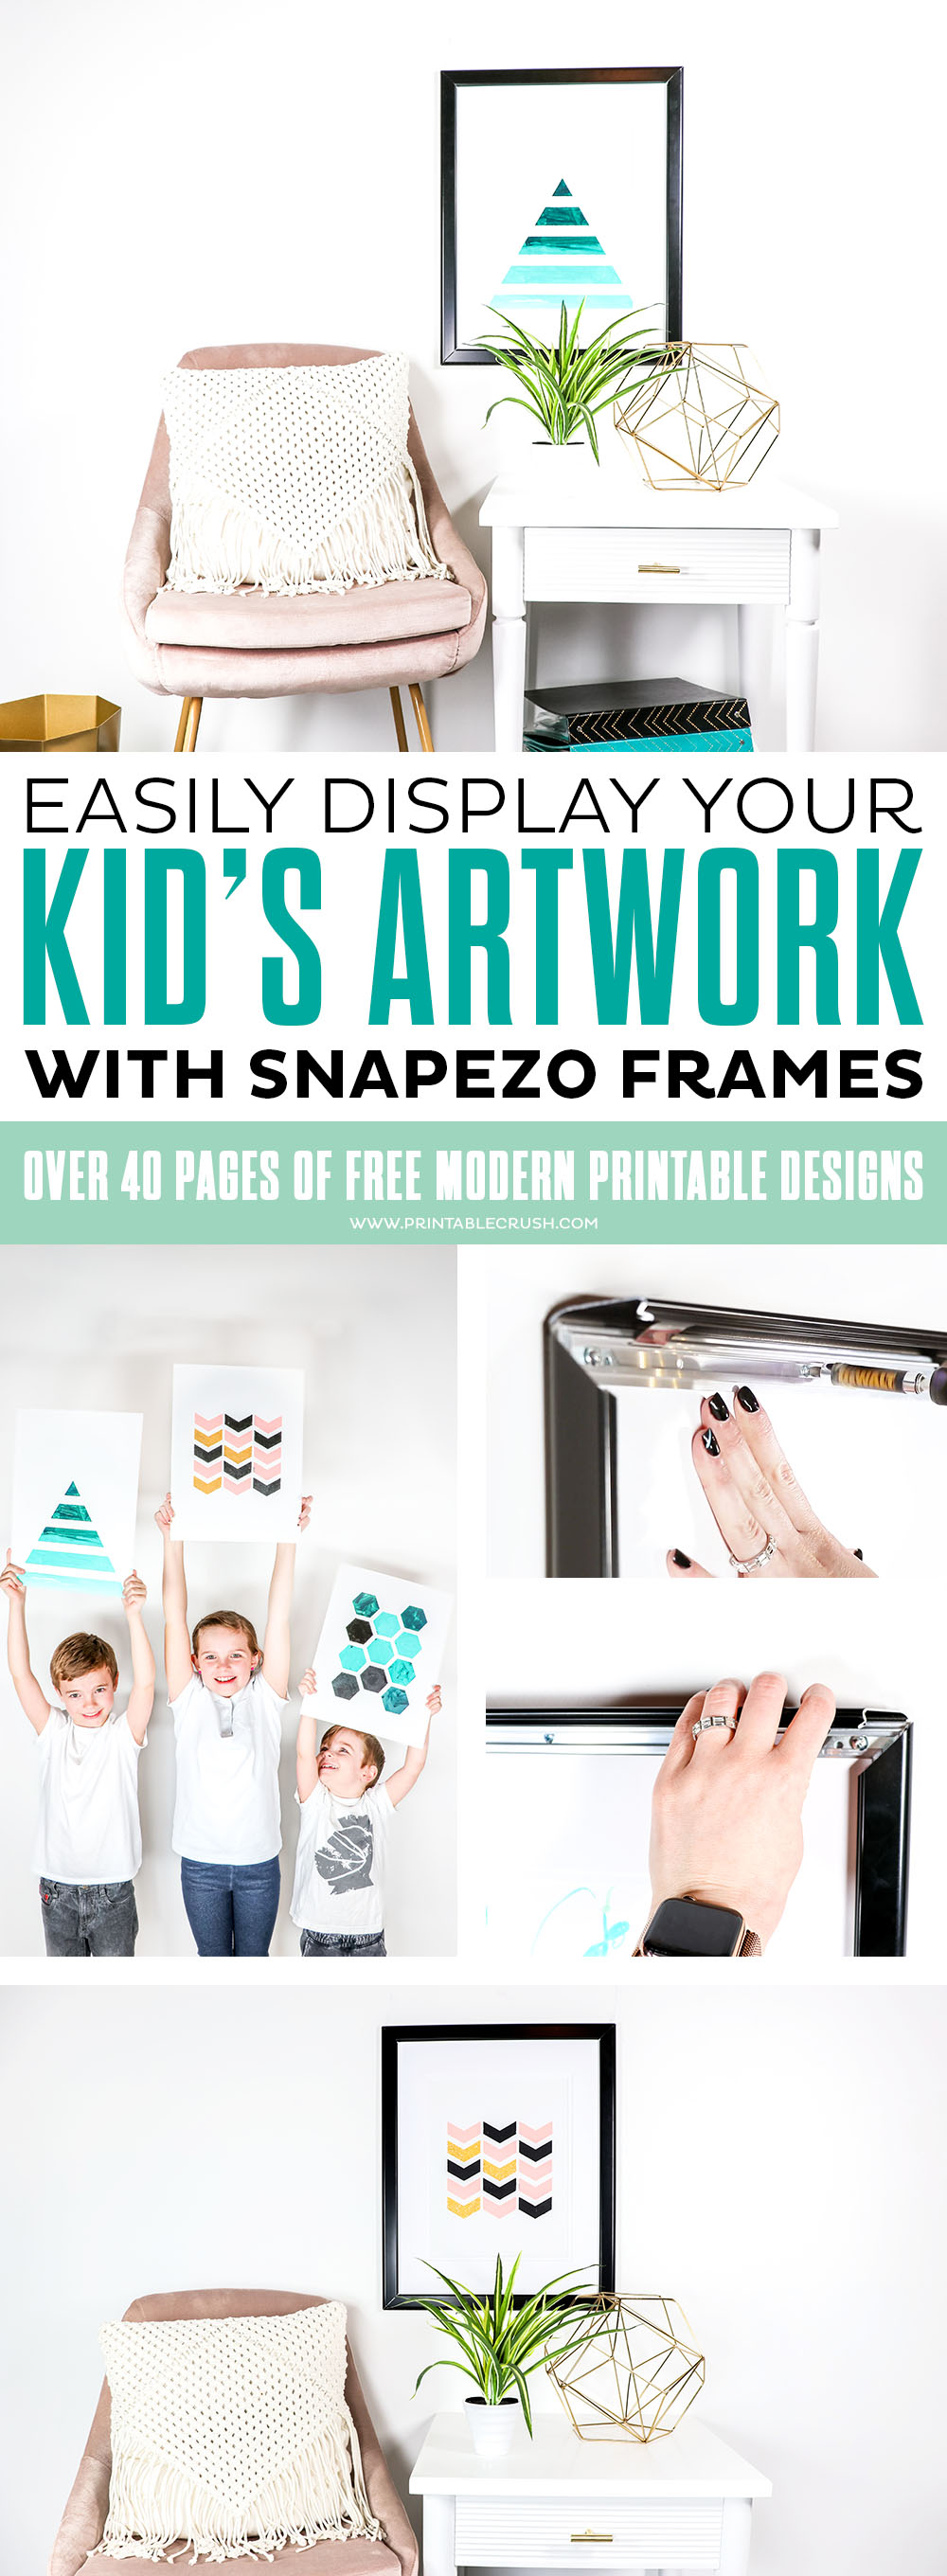 Easily switch out kid artwork with Snapezo frames - these would also be great to display and switch out schedules, printable artwork and family pictures! #snapezoframes #snapezo #kidartwork #diykidartwork #easykidactivity #moderndecor #modernhomedecor via @printablecrush